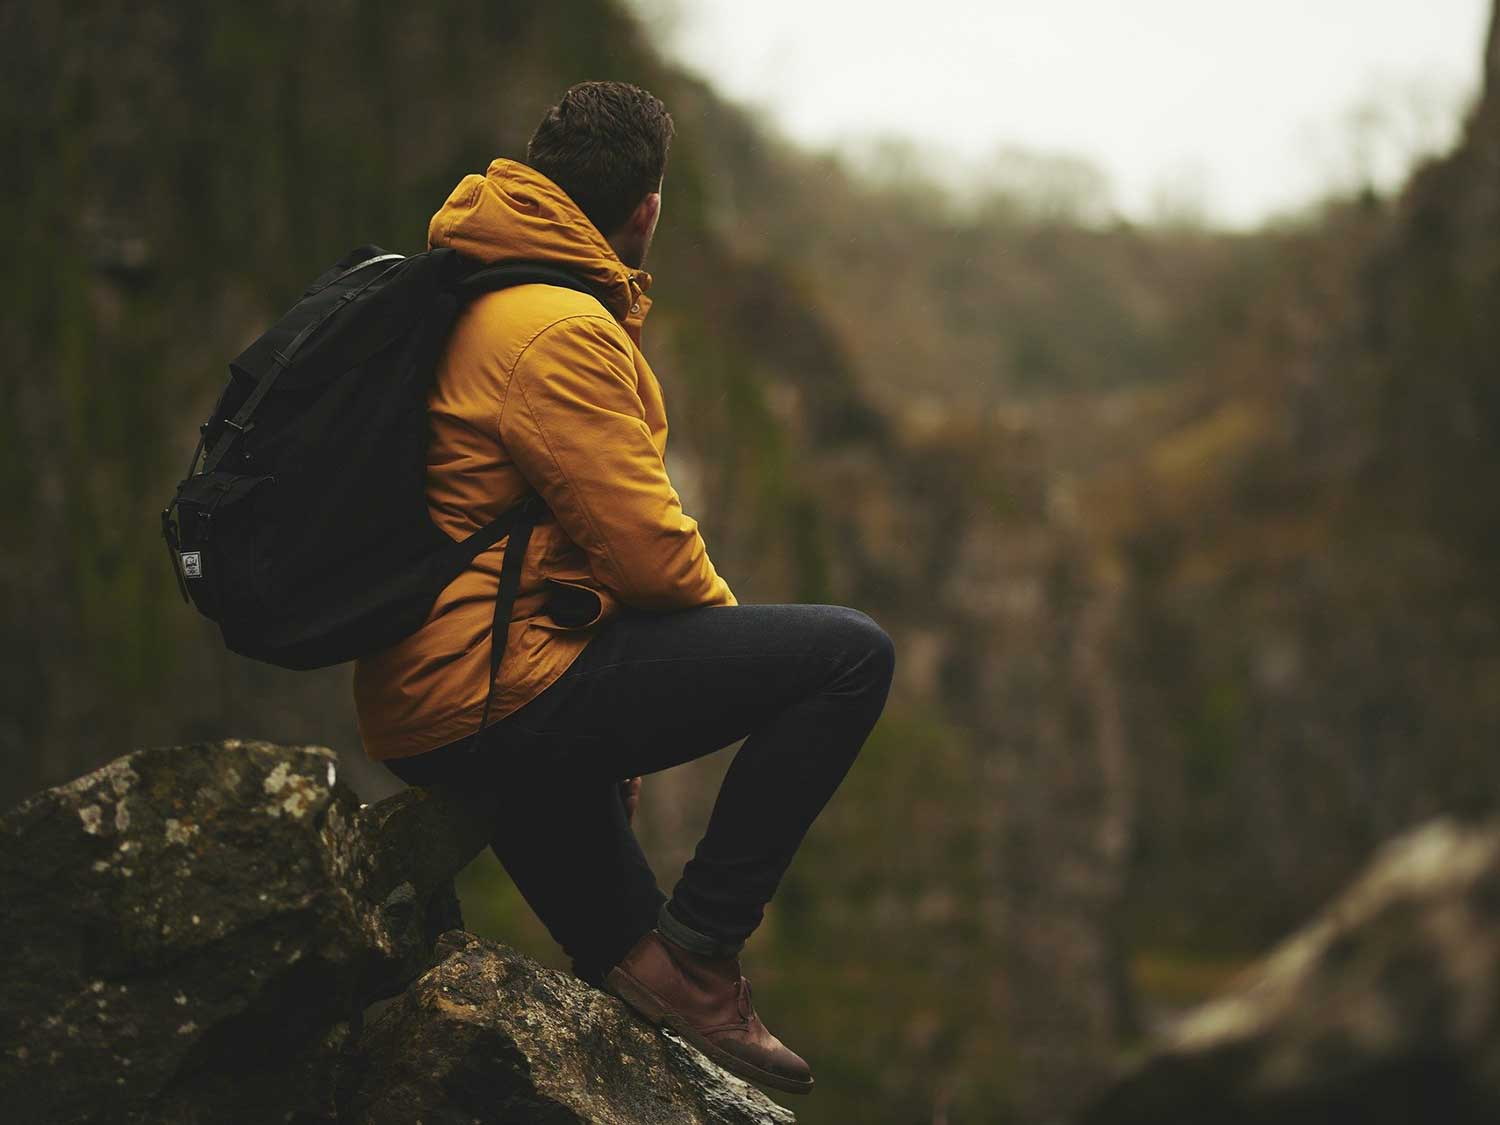 Man sitting on trail wearing hiking backpack